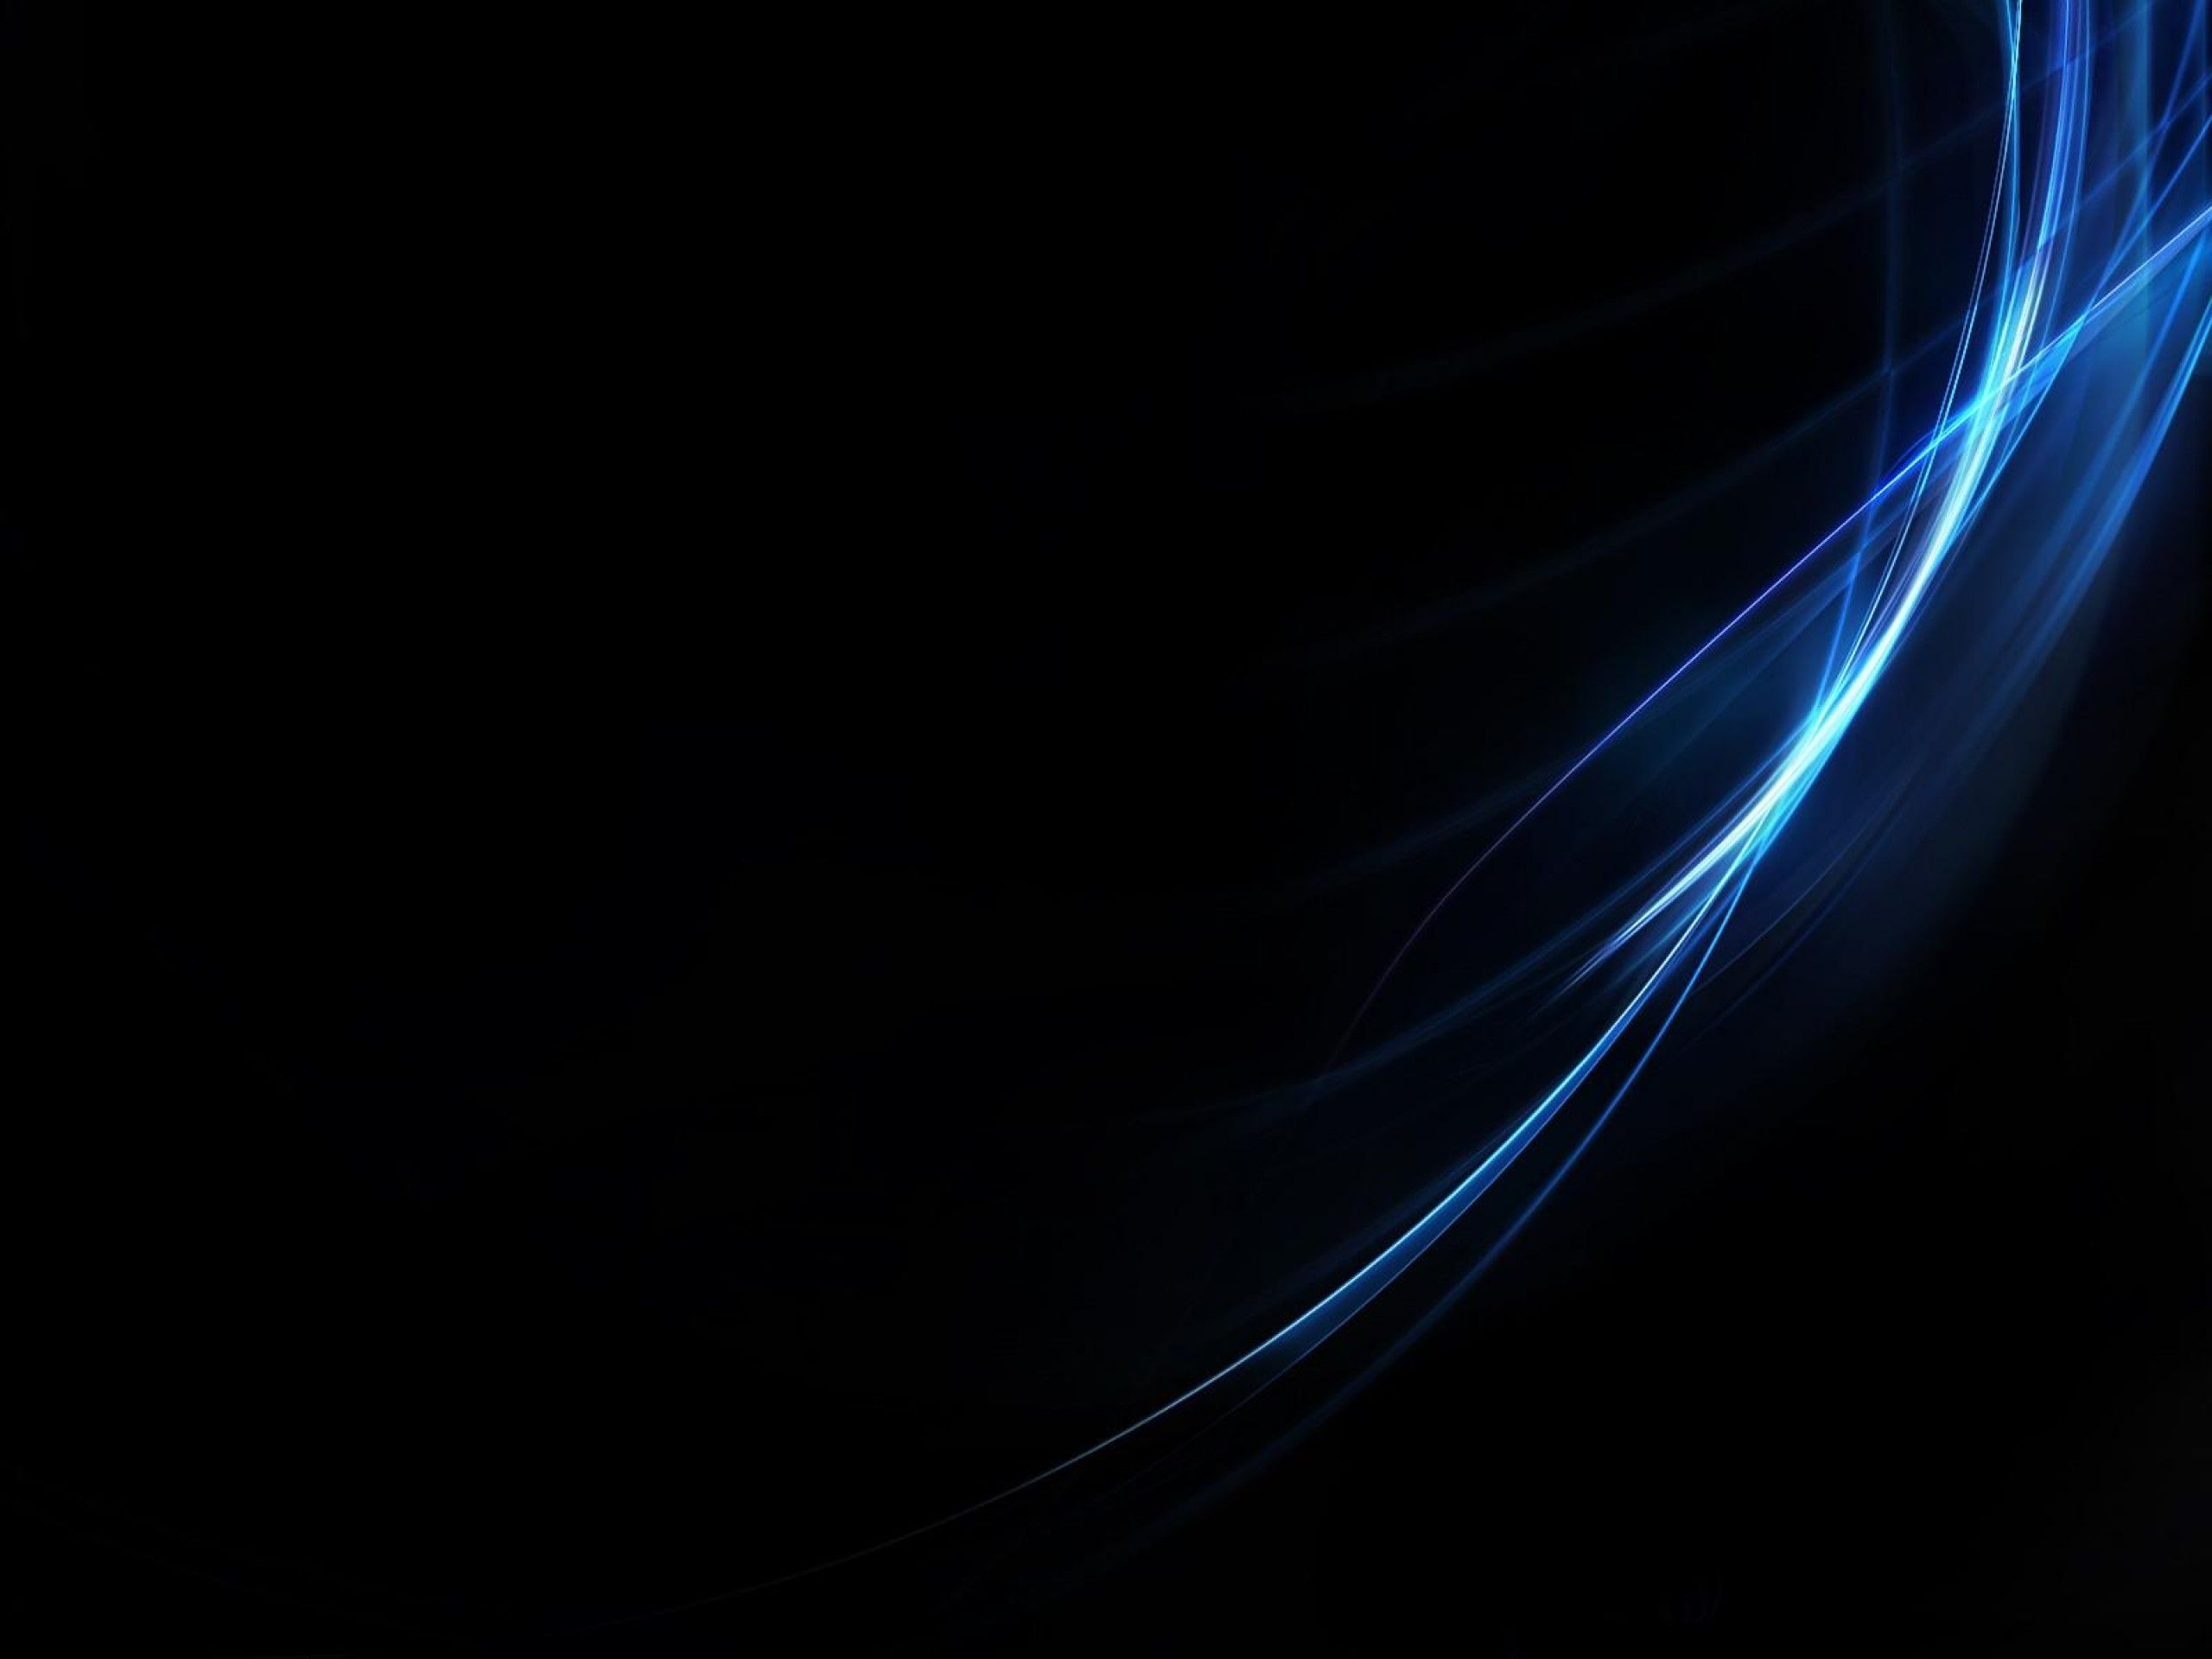 Blue And Black Wallpaper 22